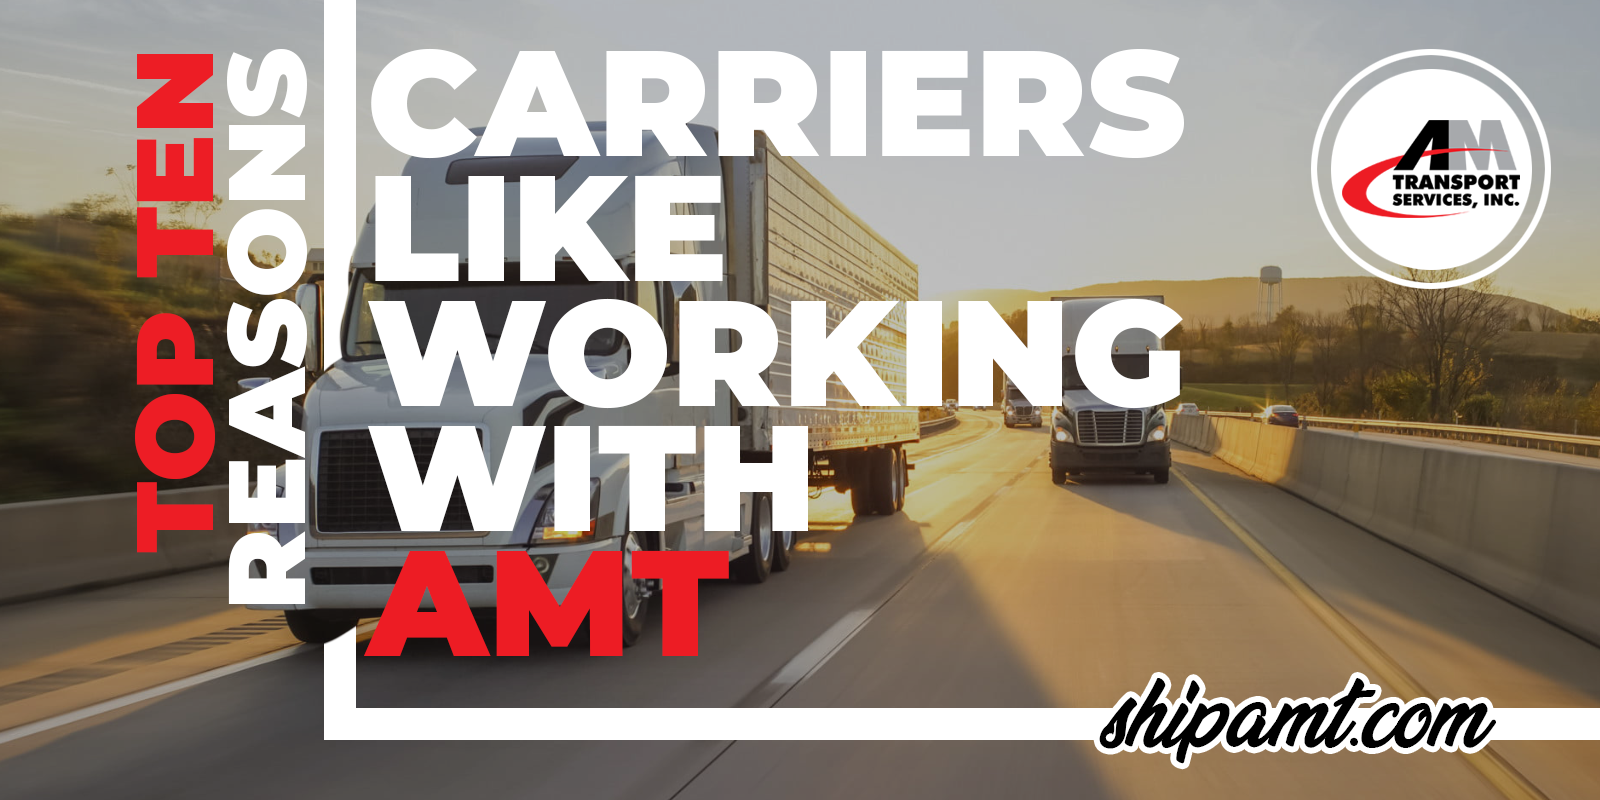 Top Ten Reasons Carriers Like Working with AMT